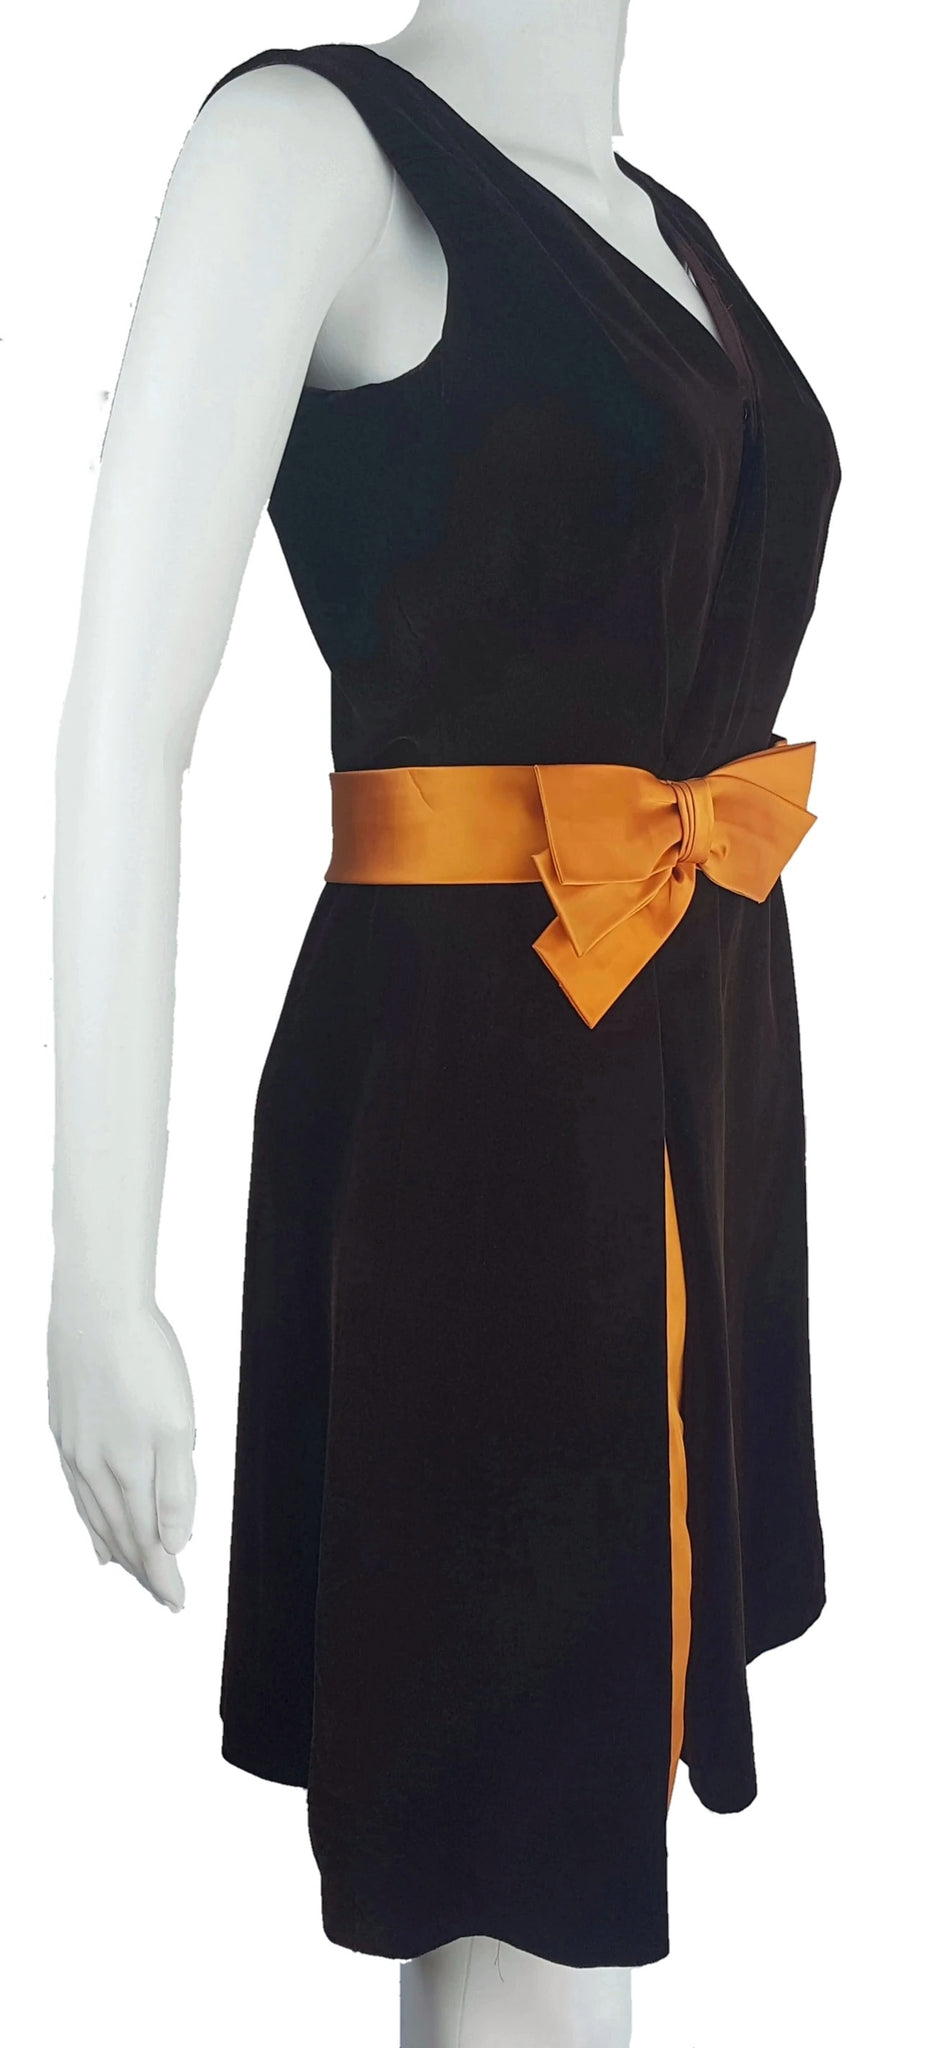 Vintage 1950's | A Lawrence Dress Original | Chocolate Brown Velvet & Orange Ribbon Dress